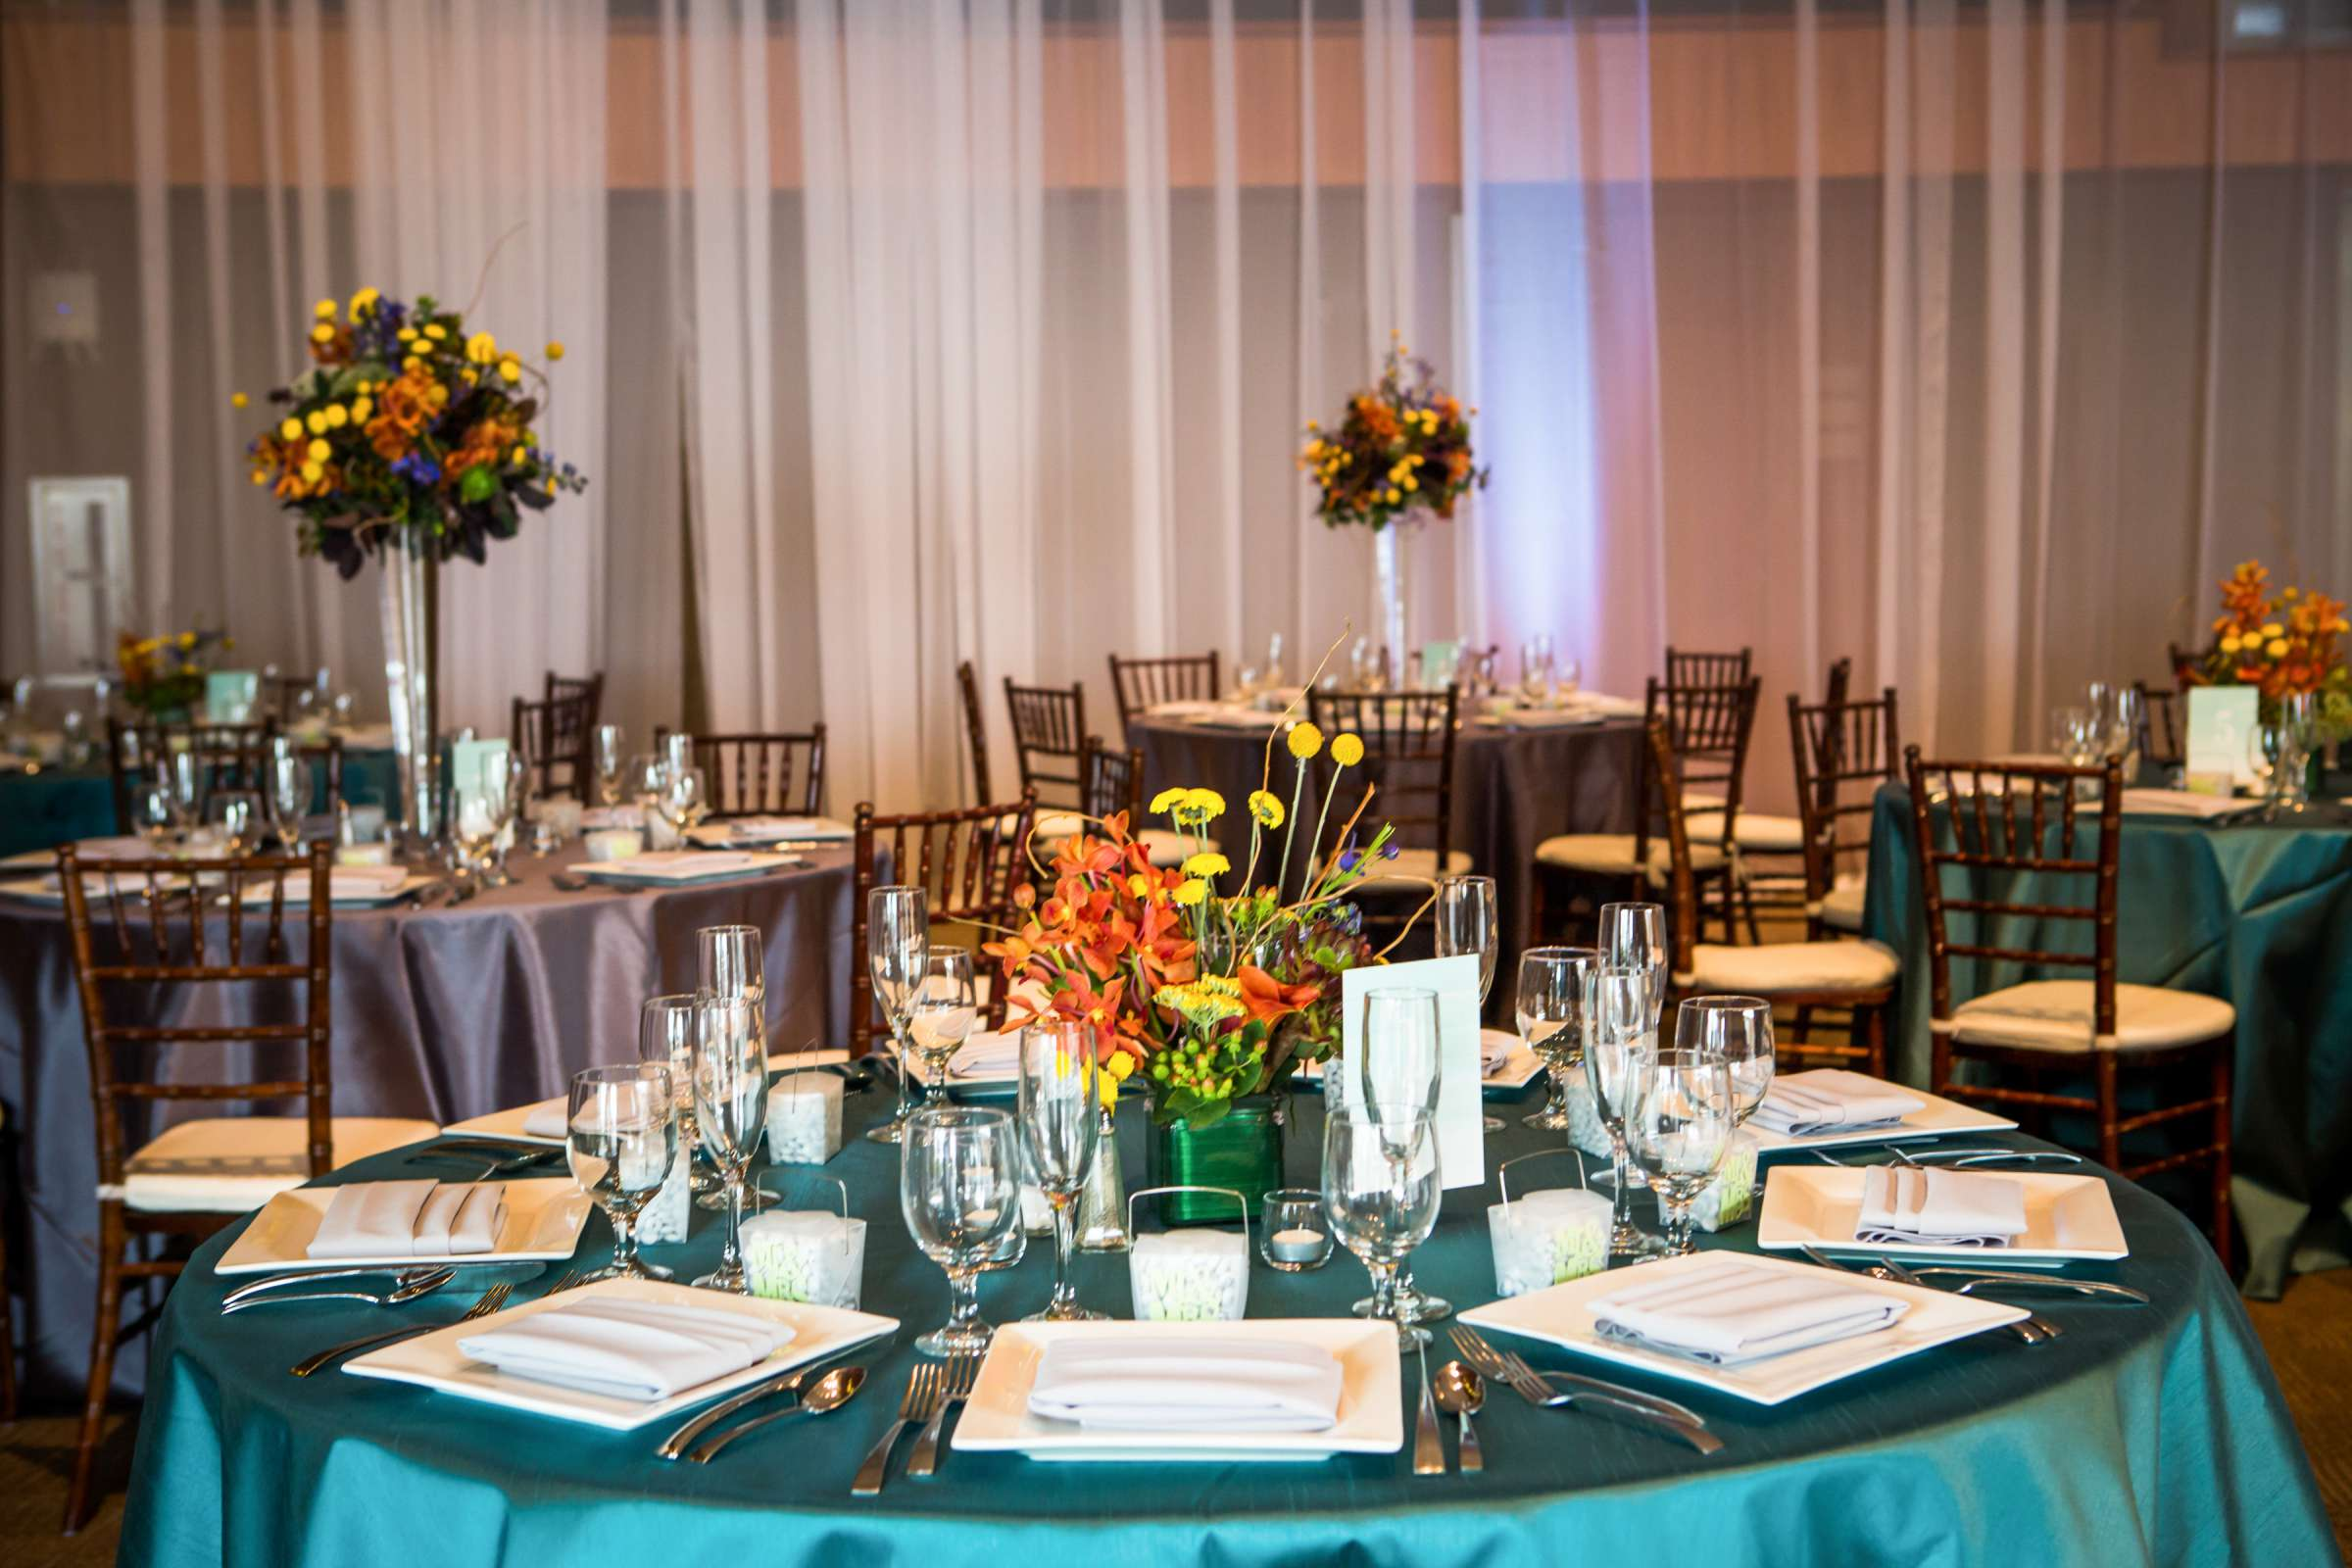 Scripps Seaside Forum Wedding coordinated by Francine Ribeau Events, Shaina and Christopher Wedding Photo #31 by True Photography